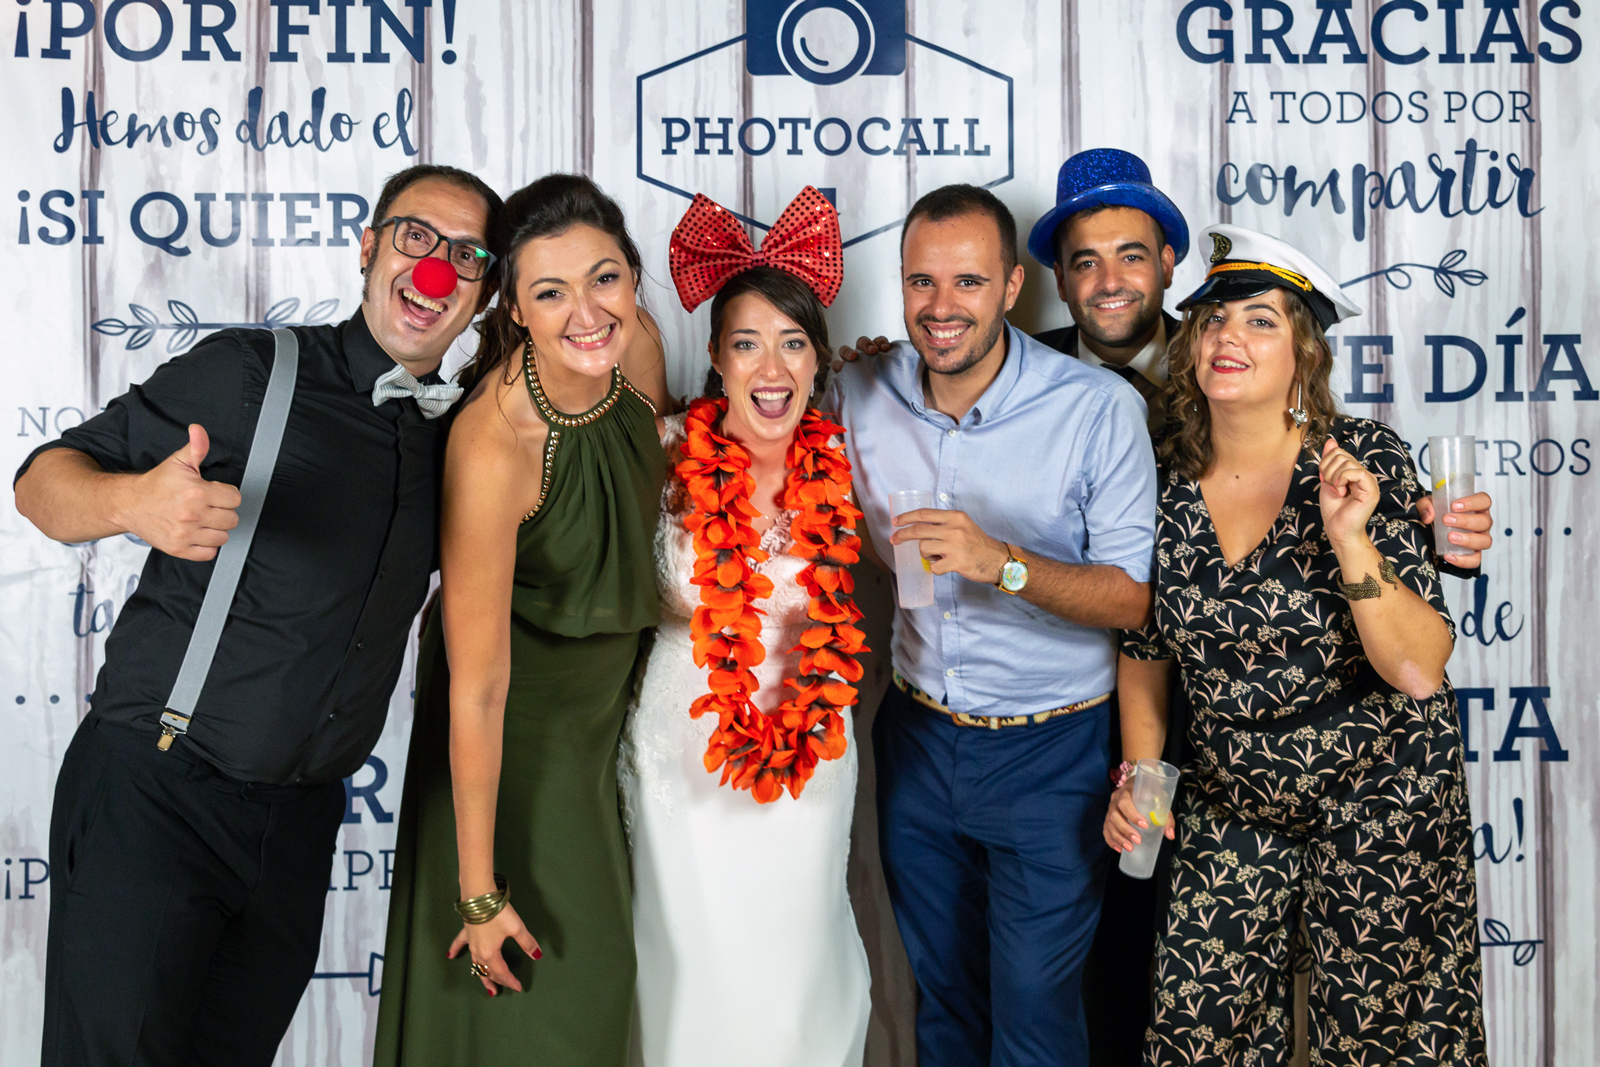 Photocall-Laura-&-Mauro-(35)